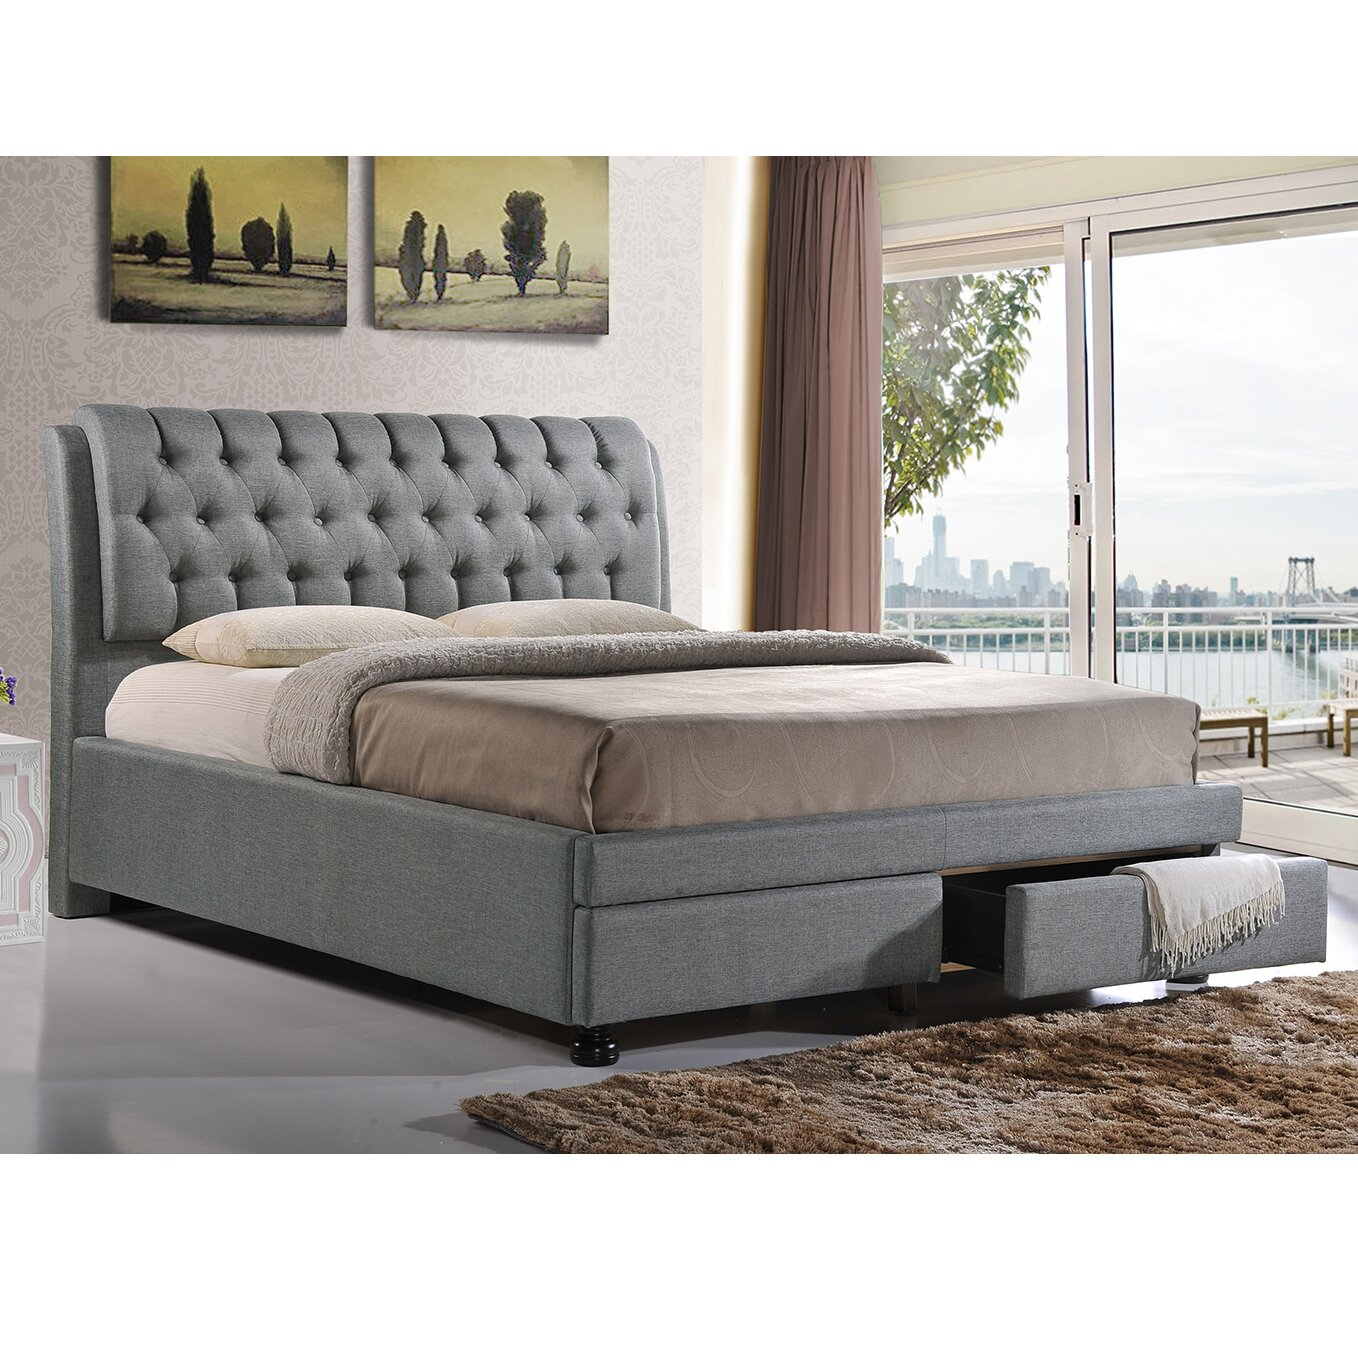 wholesale interiors baxton studio upholstered storage platform bed